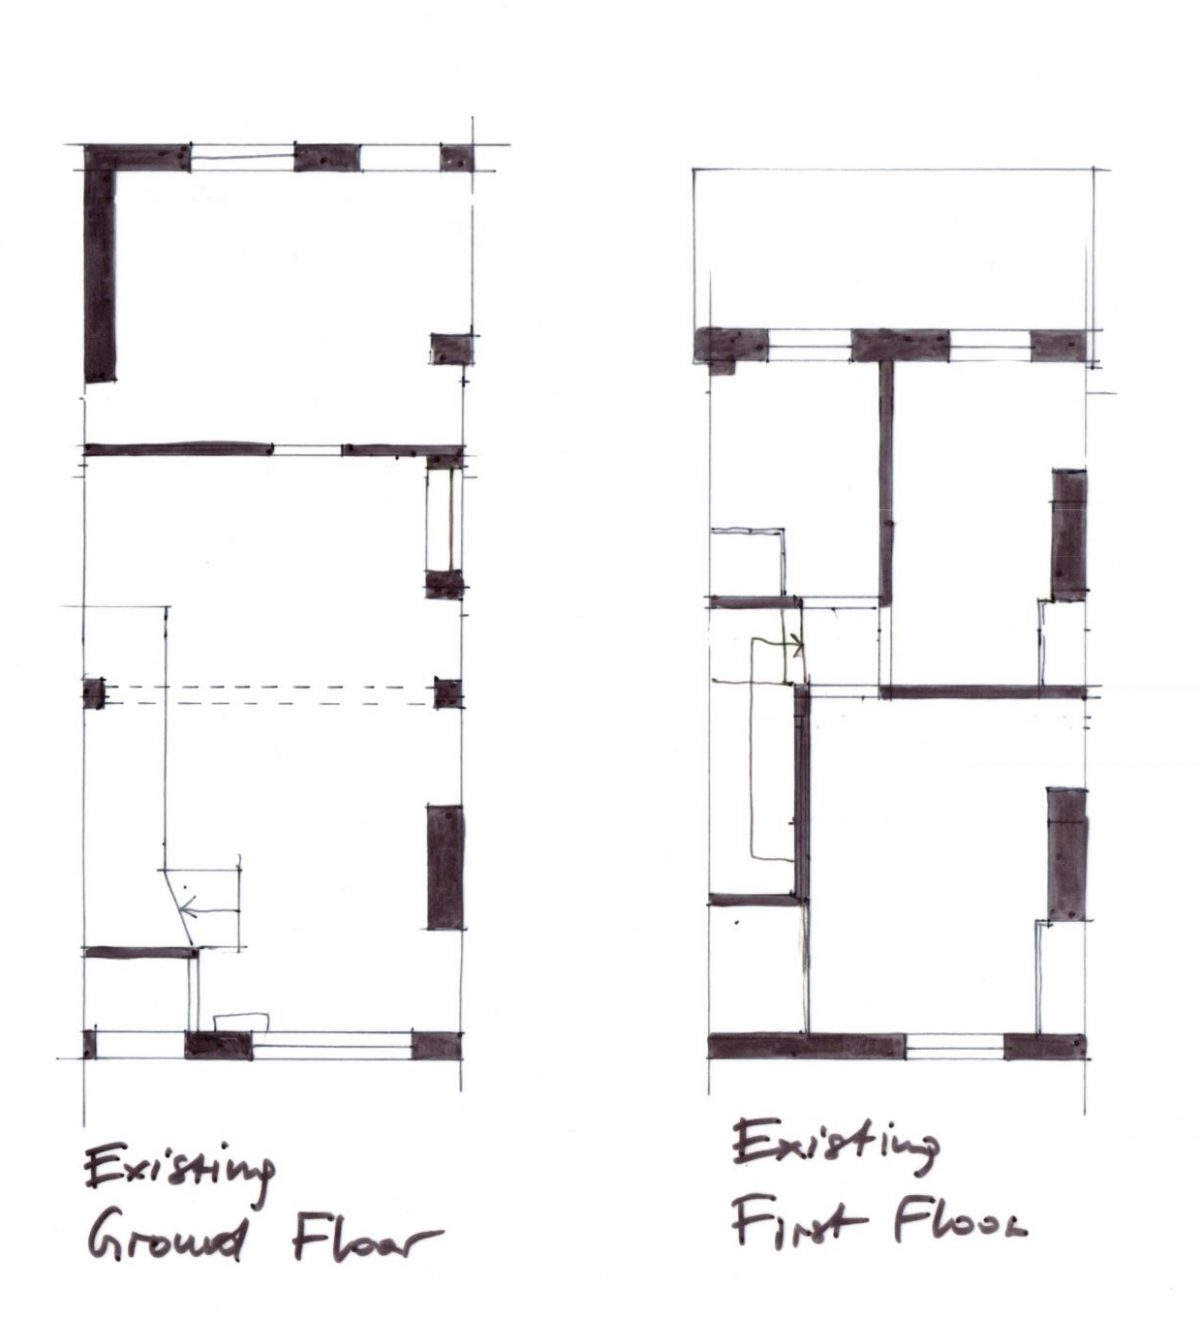 Home Extension & Kitchen Redesign